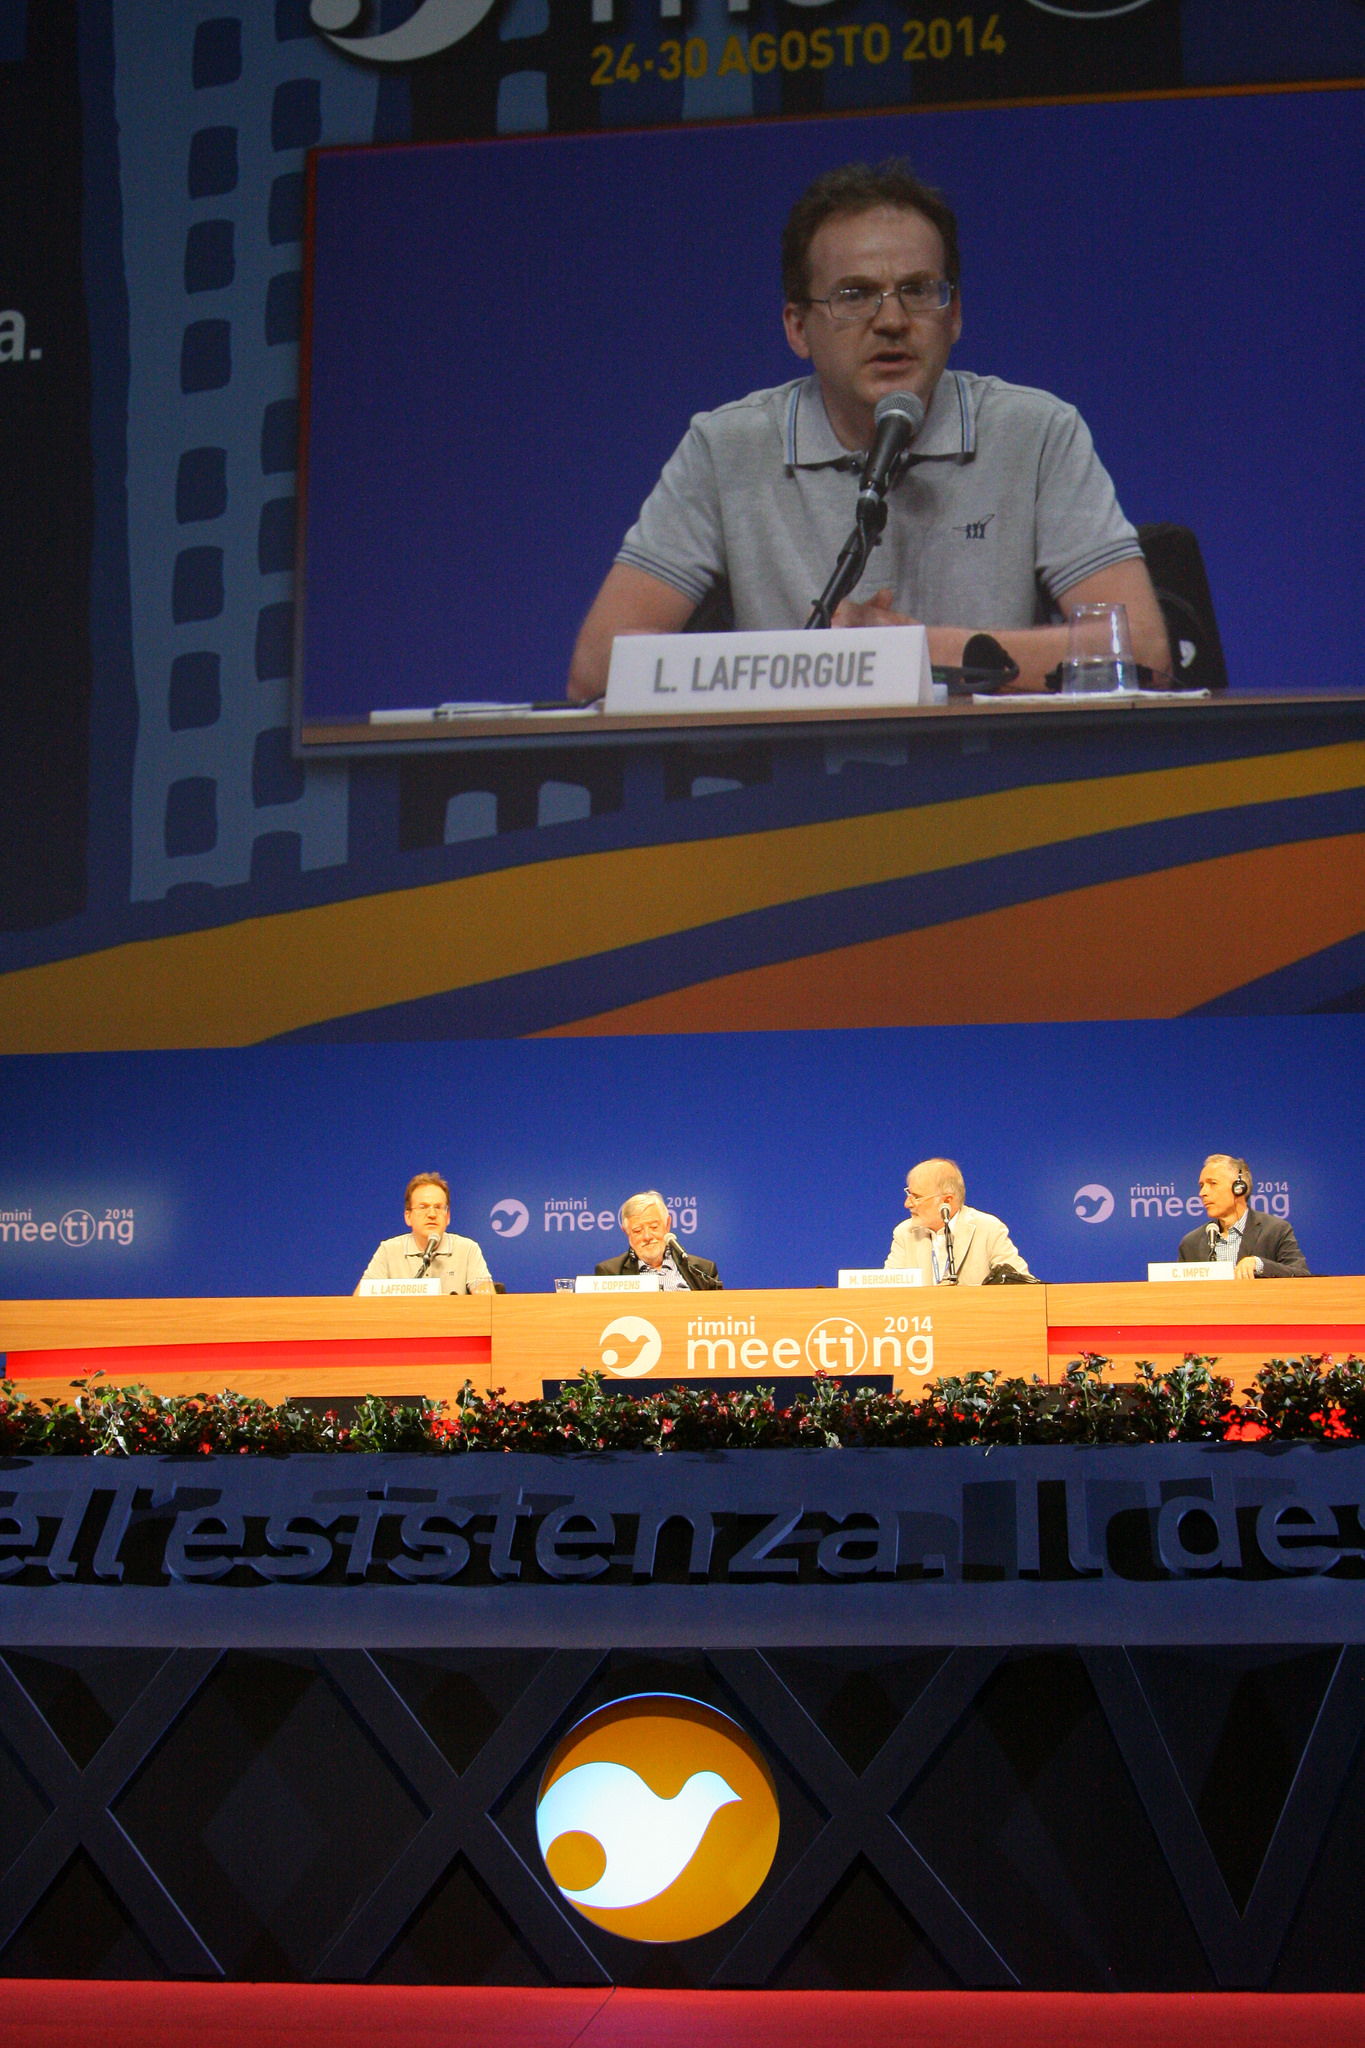 meeting-rimini-lafforgue-scienza3